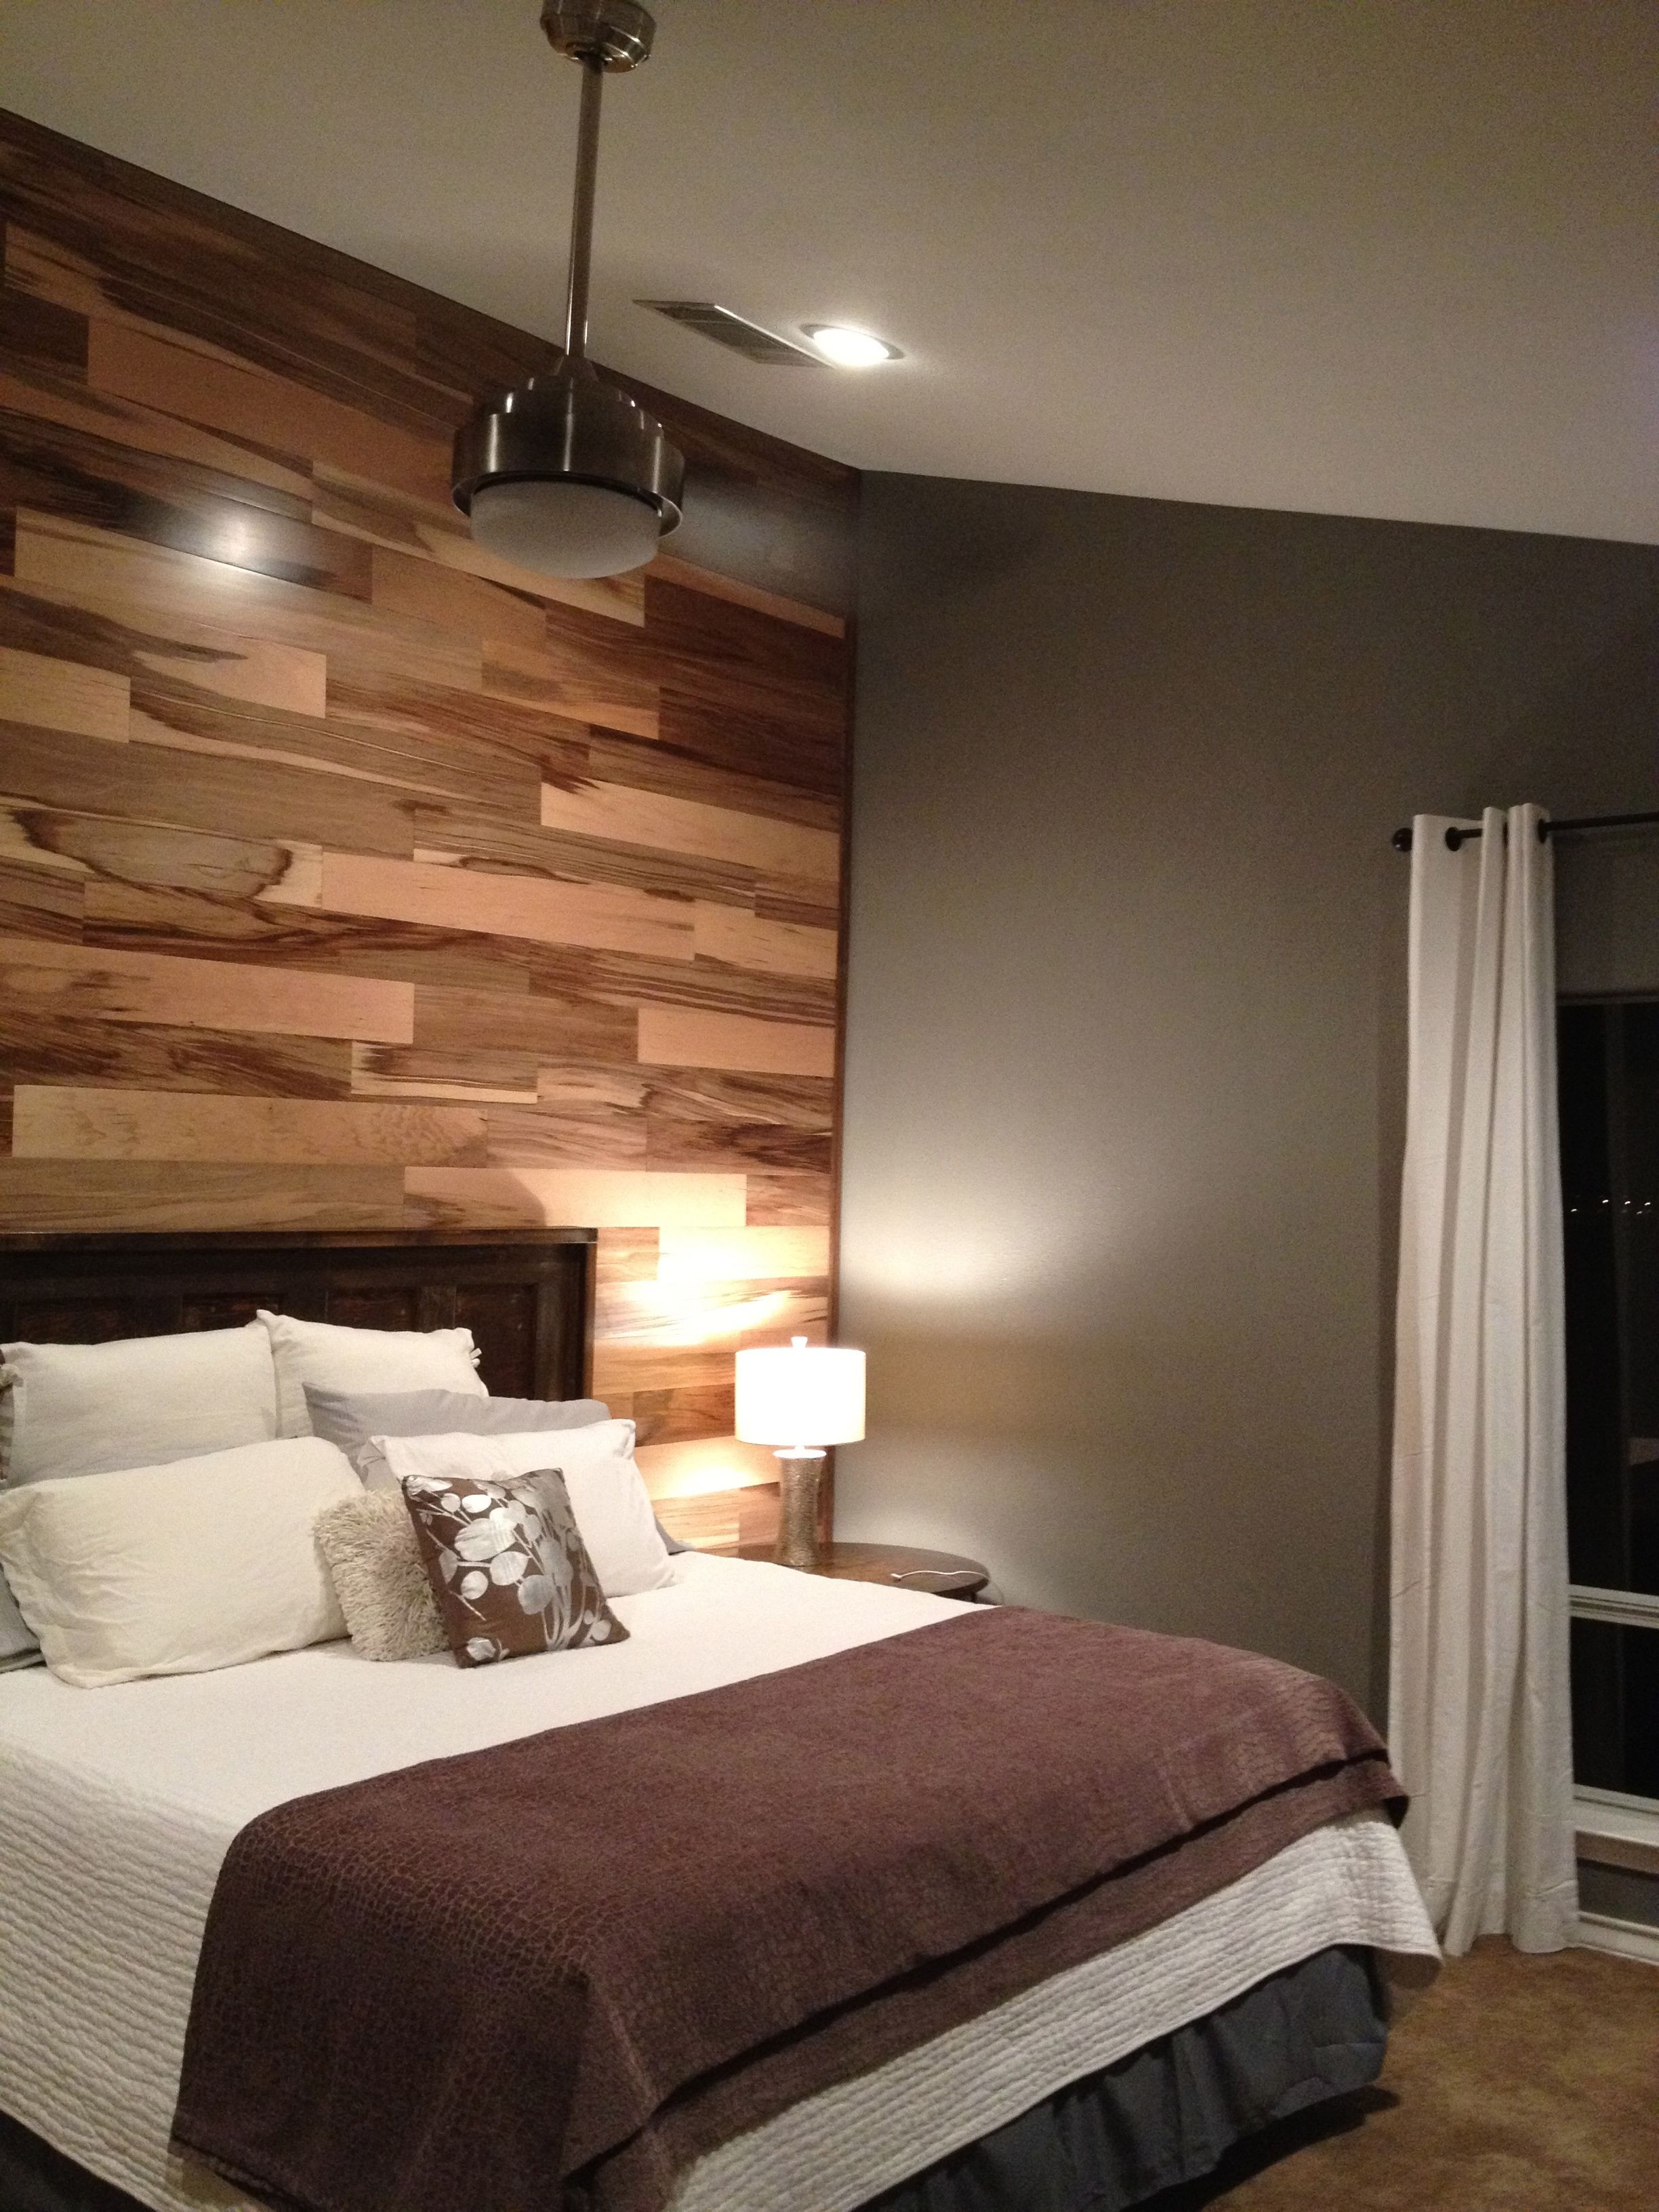 Love the floor on the wall! | Decorating | Flooring on walls ...